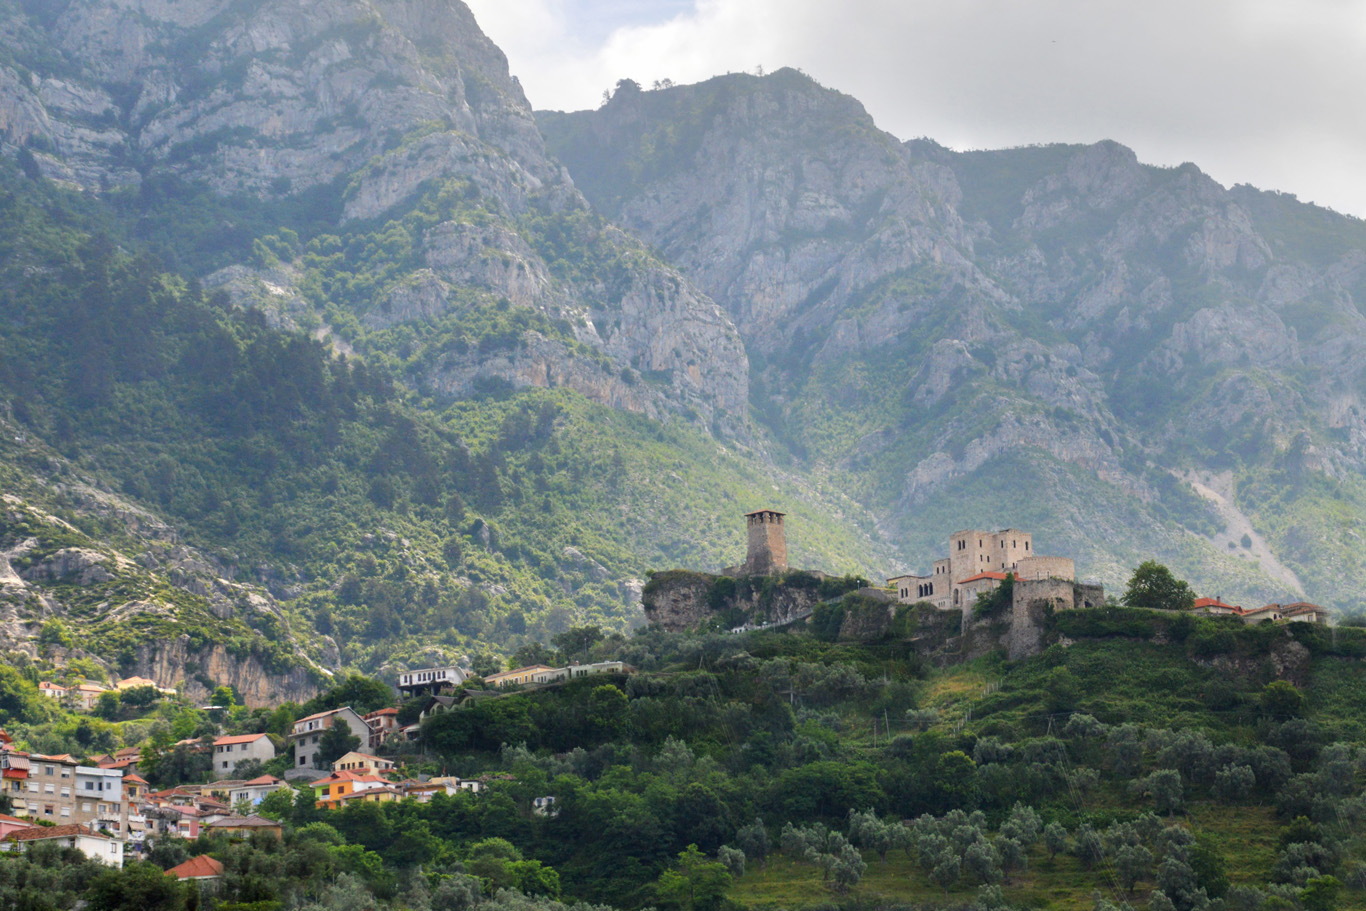 Kruja surrounded by the mountains